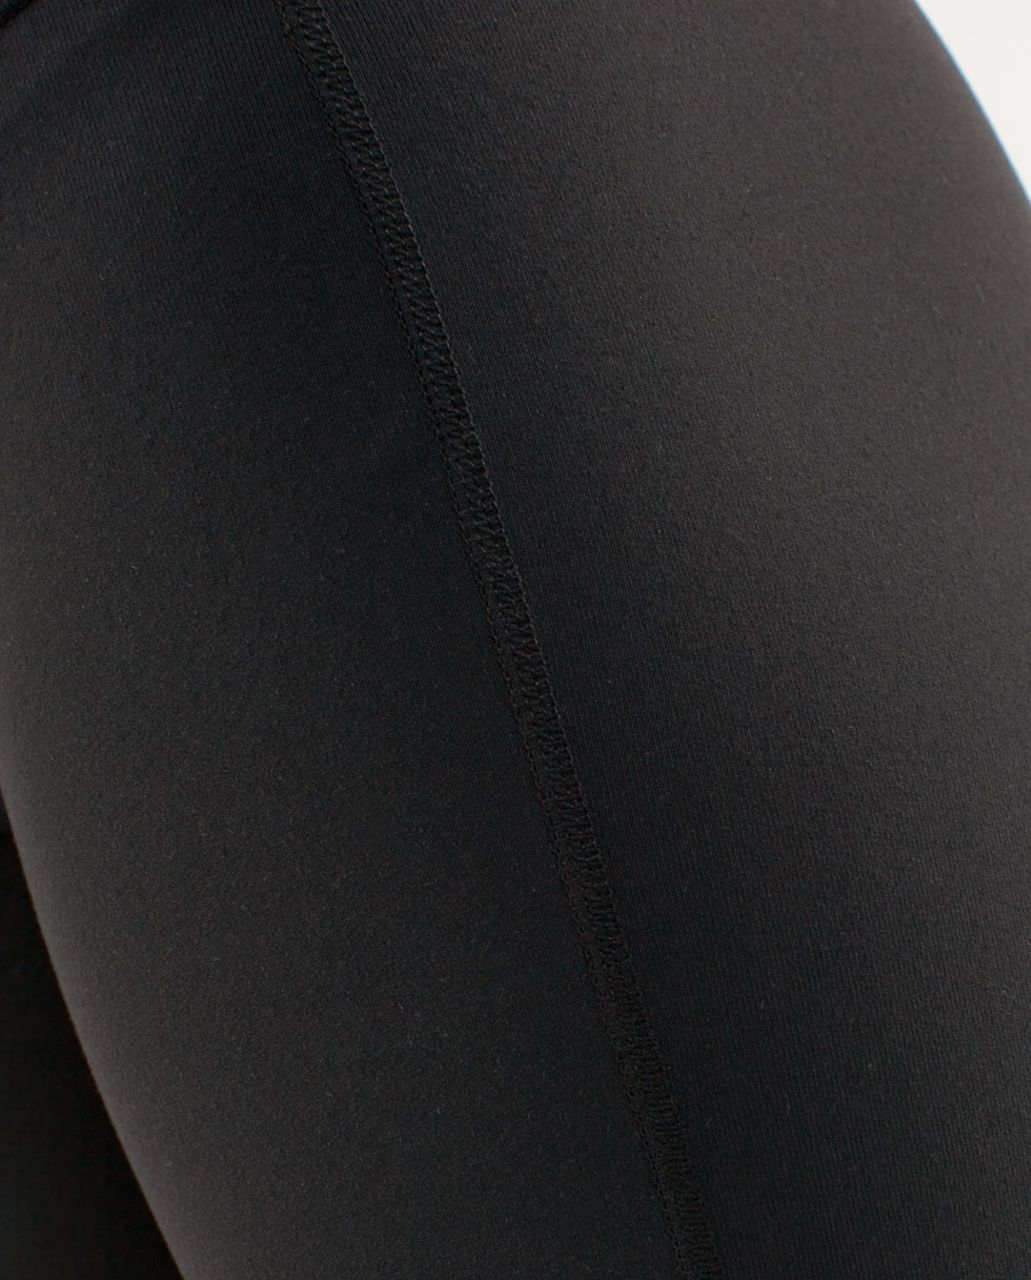 Lululemon Wunder Under Pant *Zipper - Black